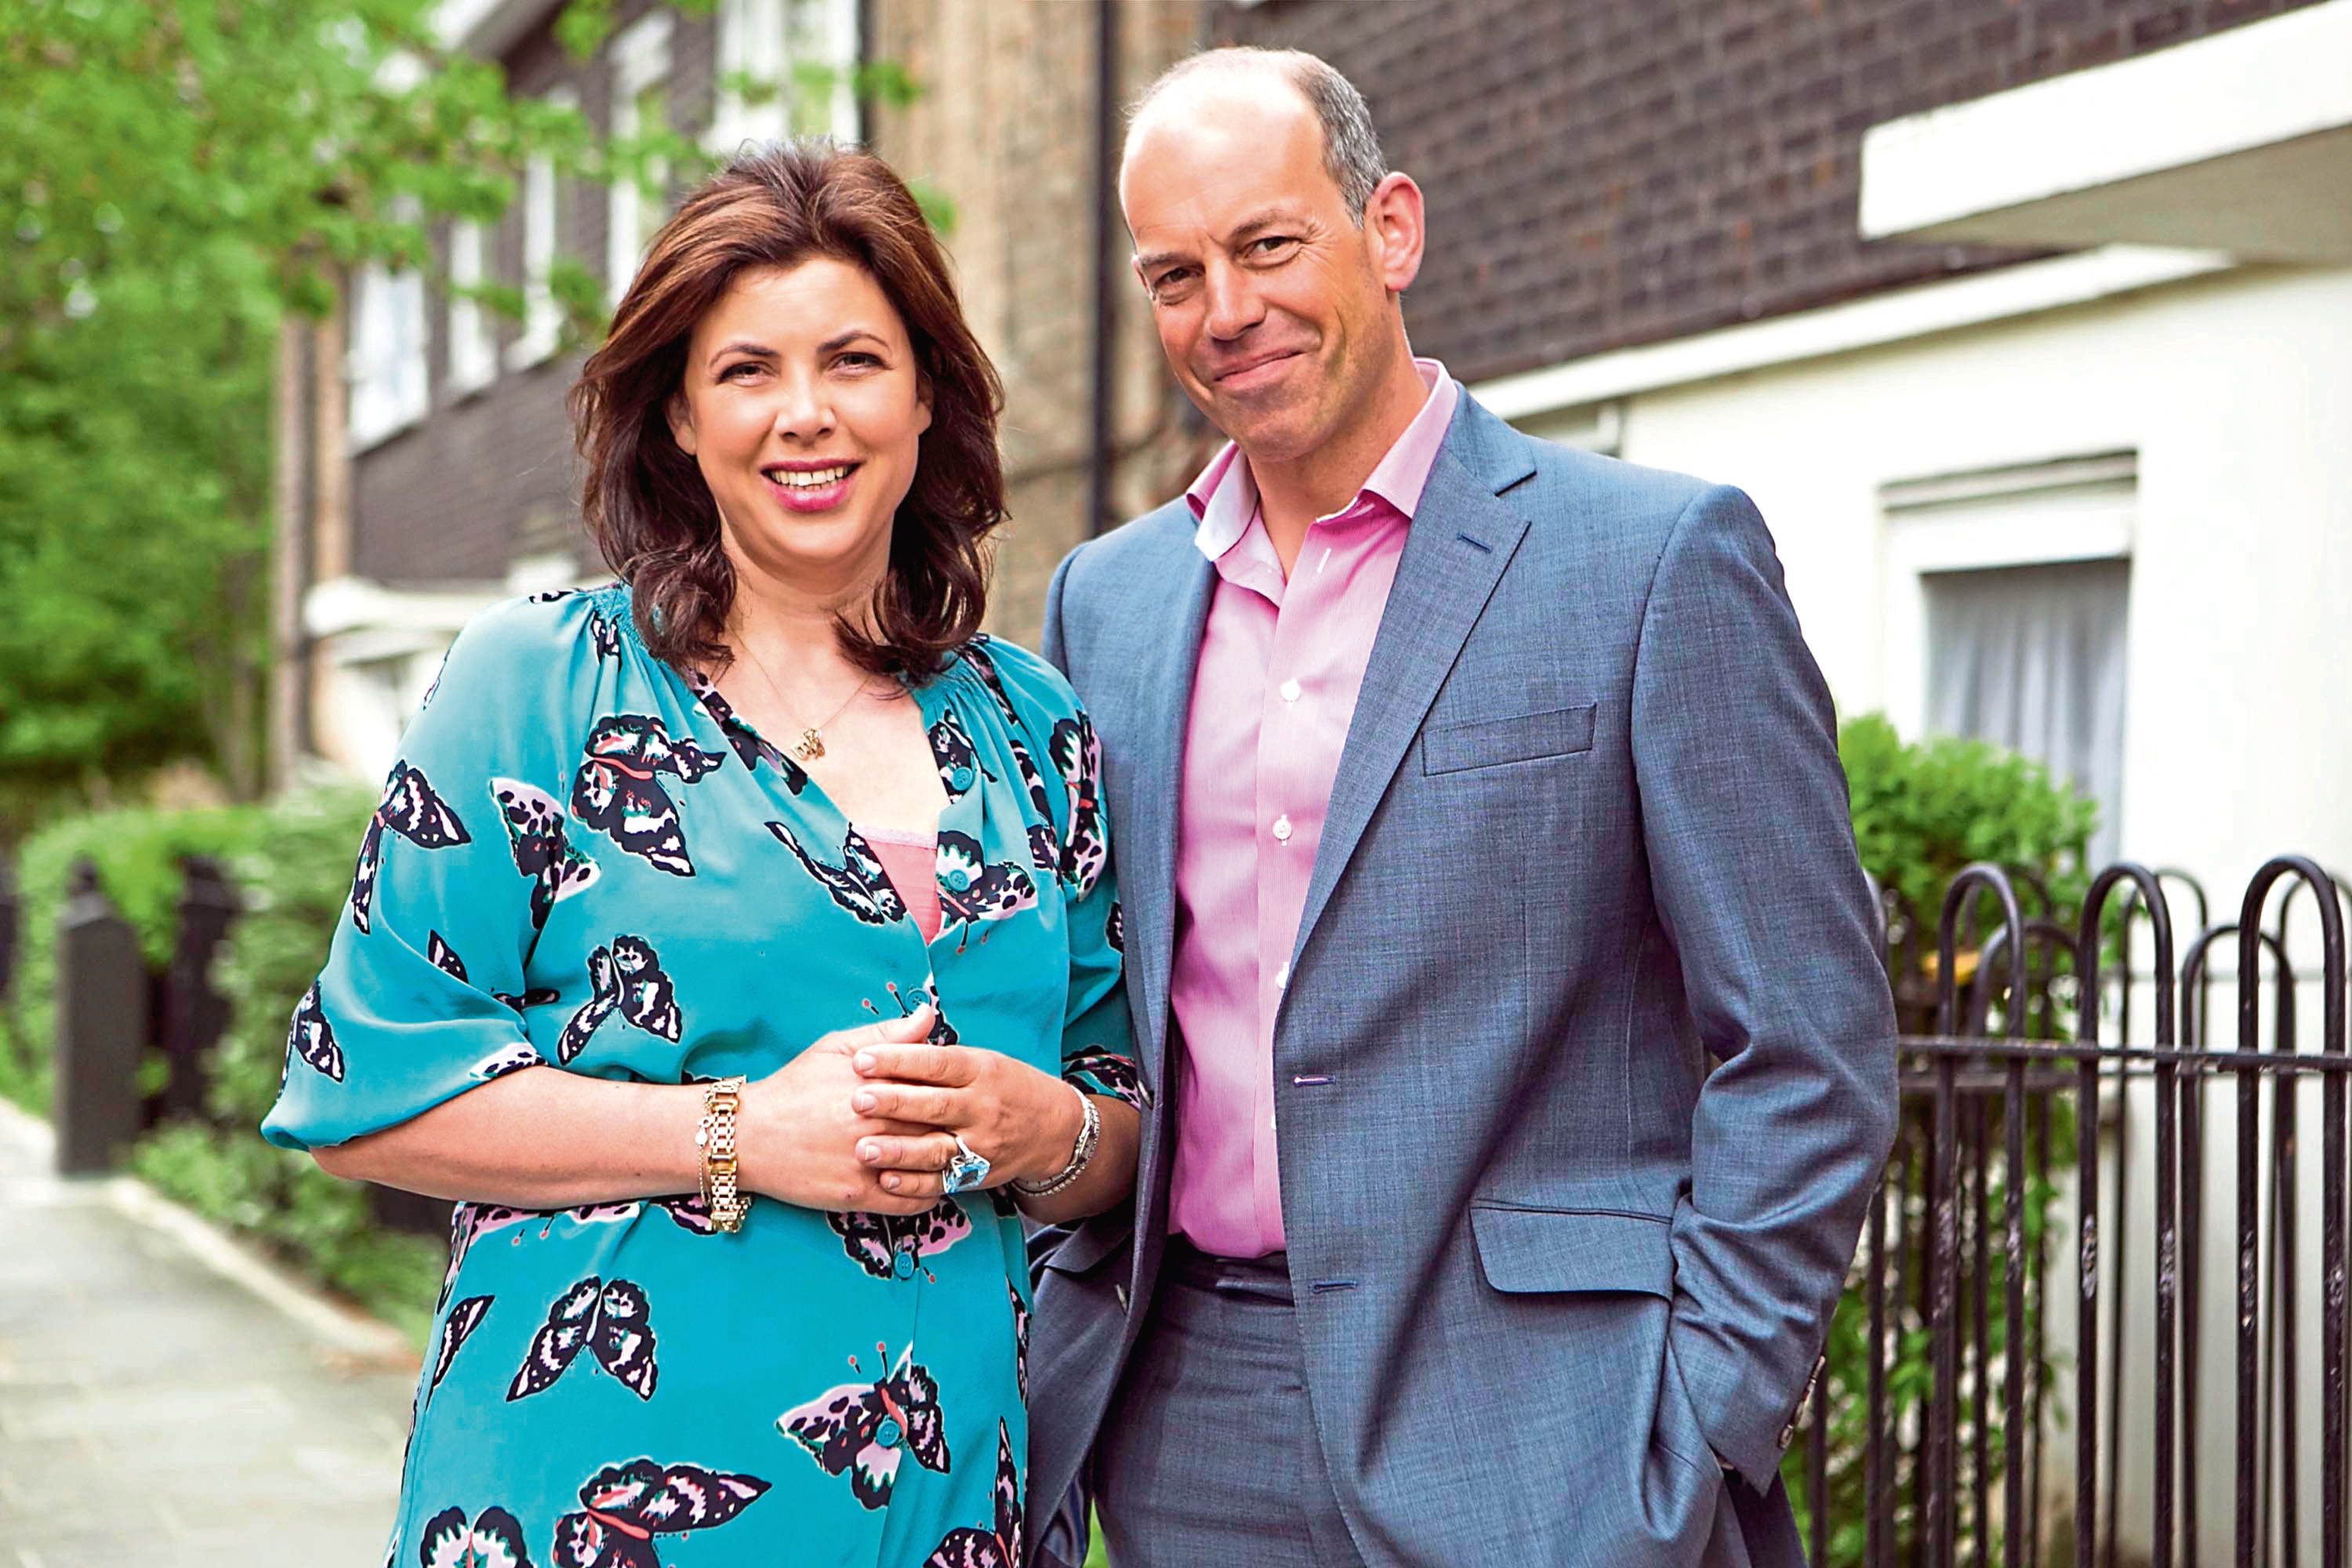 Home expert Phil Spencer with TV sidekick Kirstie Allsopp